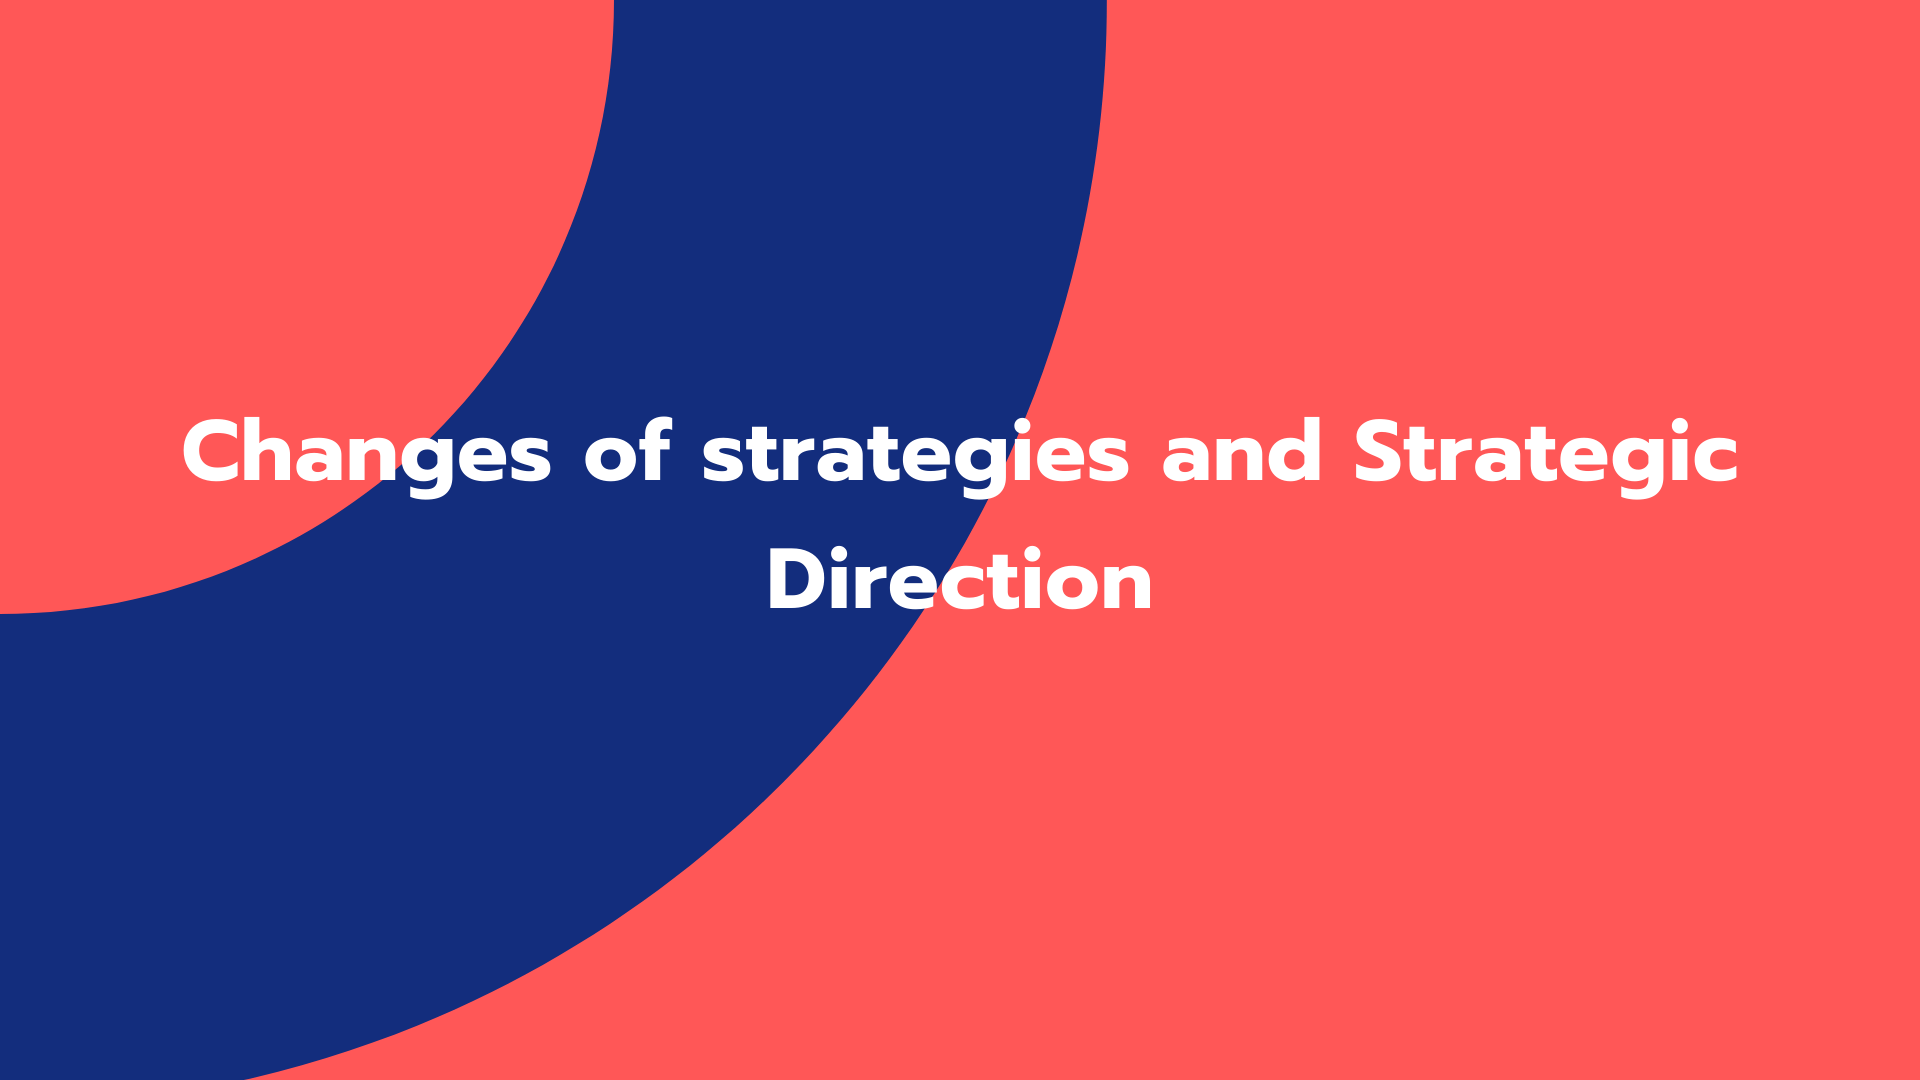 Changes of strategies and Strategic Direction